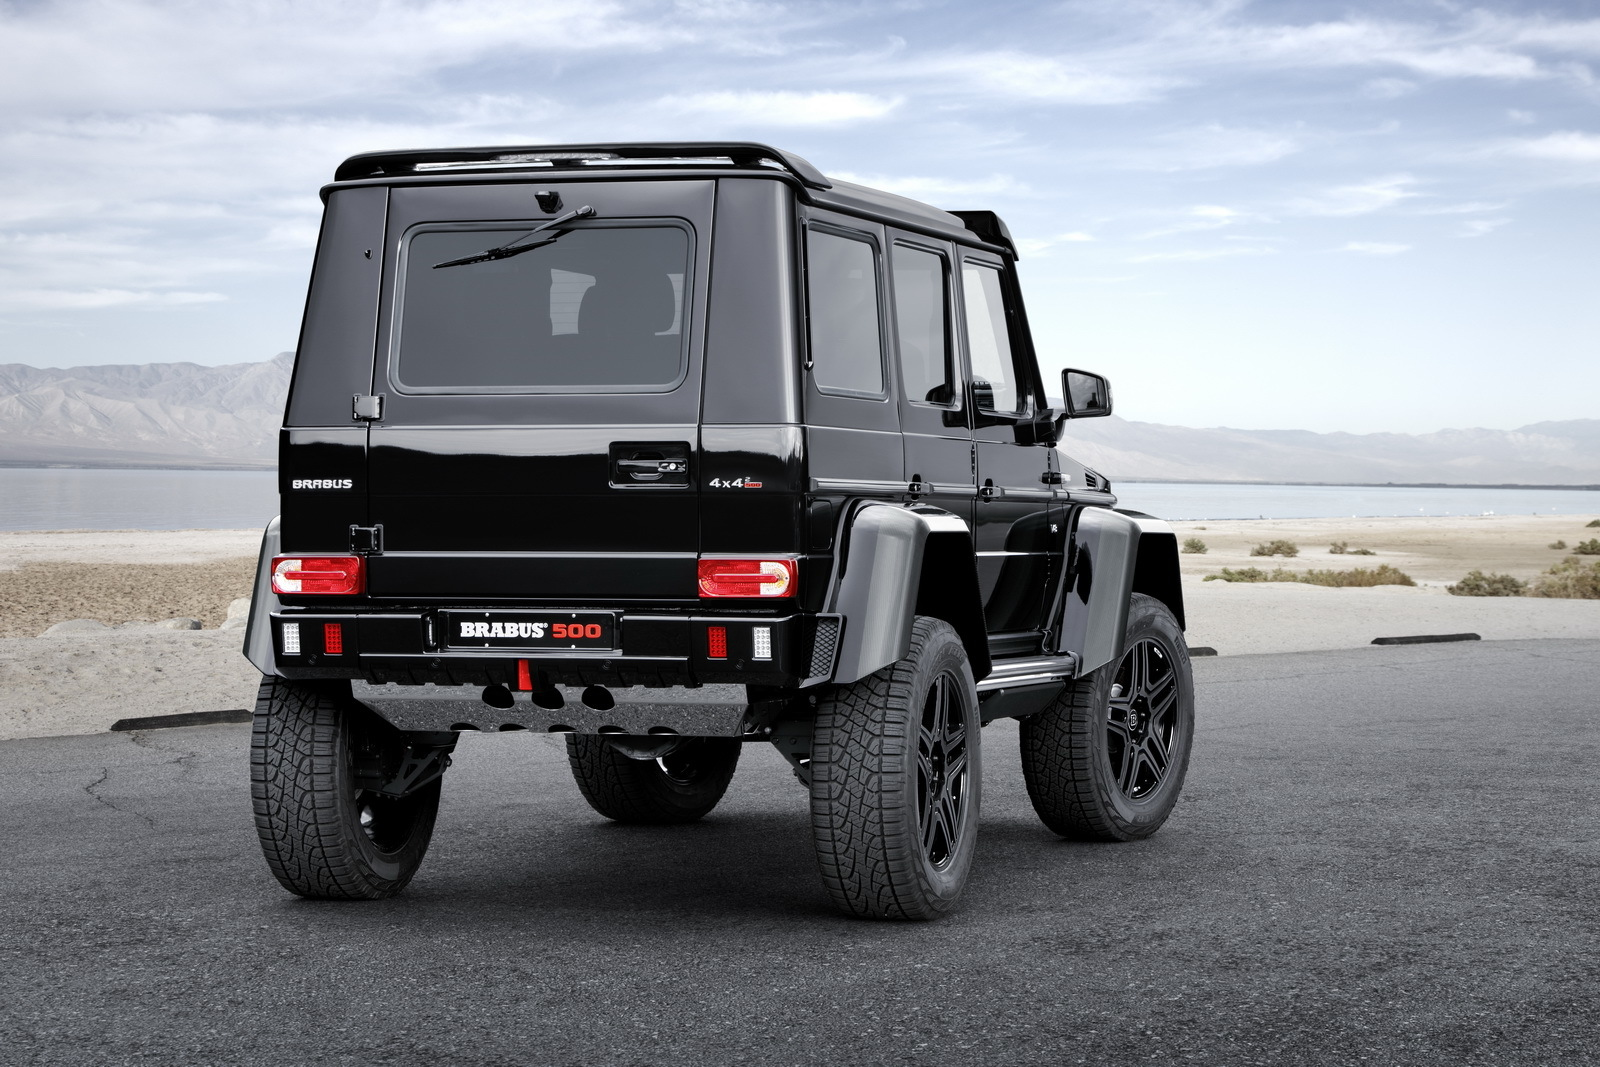 ' ' from the web at 'http://www.blogcdn.com/slideshows/images/slides/362/039/3/S3620393/slug/l/brabus-mercedes-benz-g-500-4-x-4-003-1.jpg'